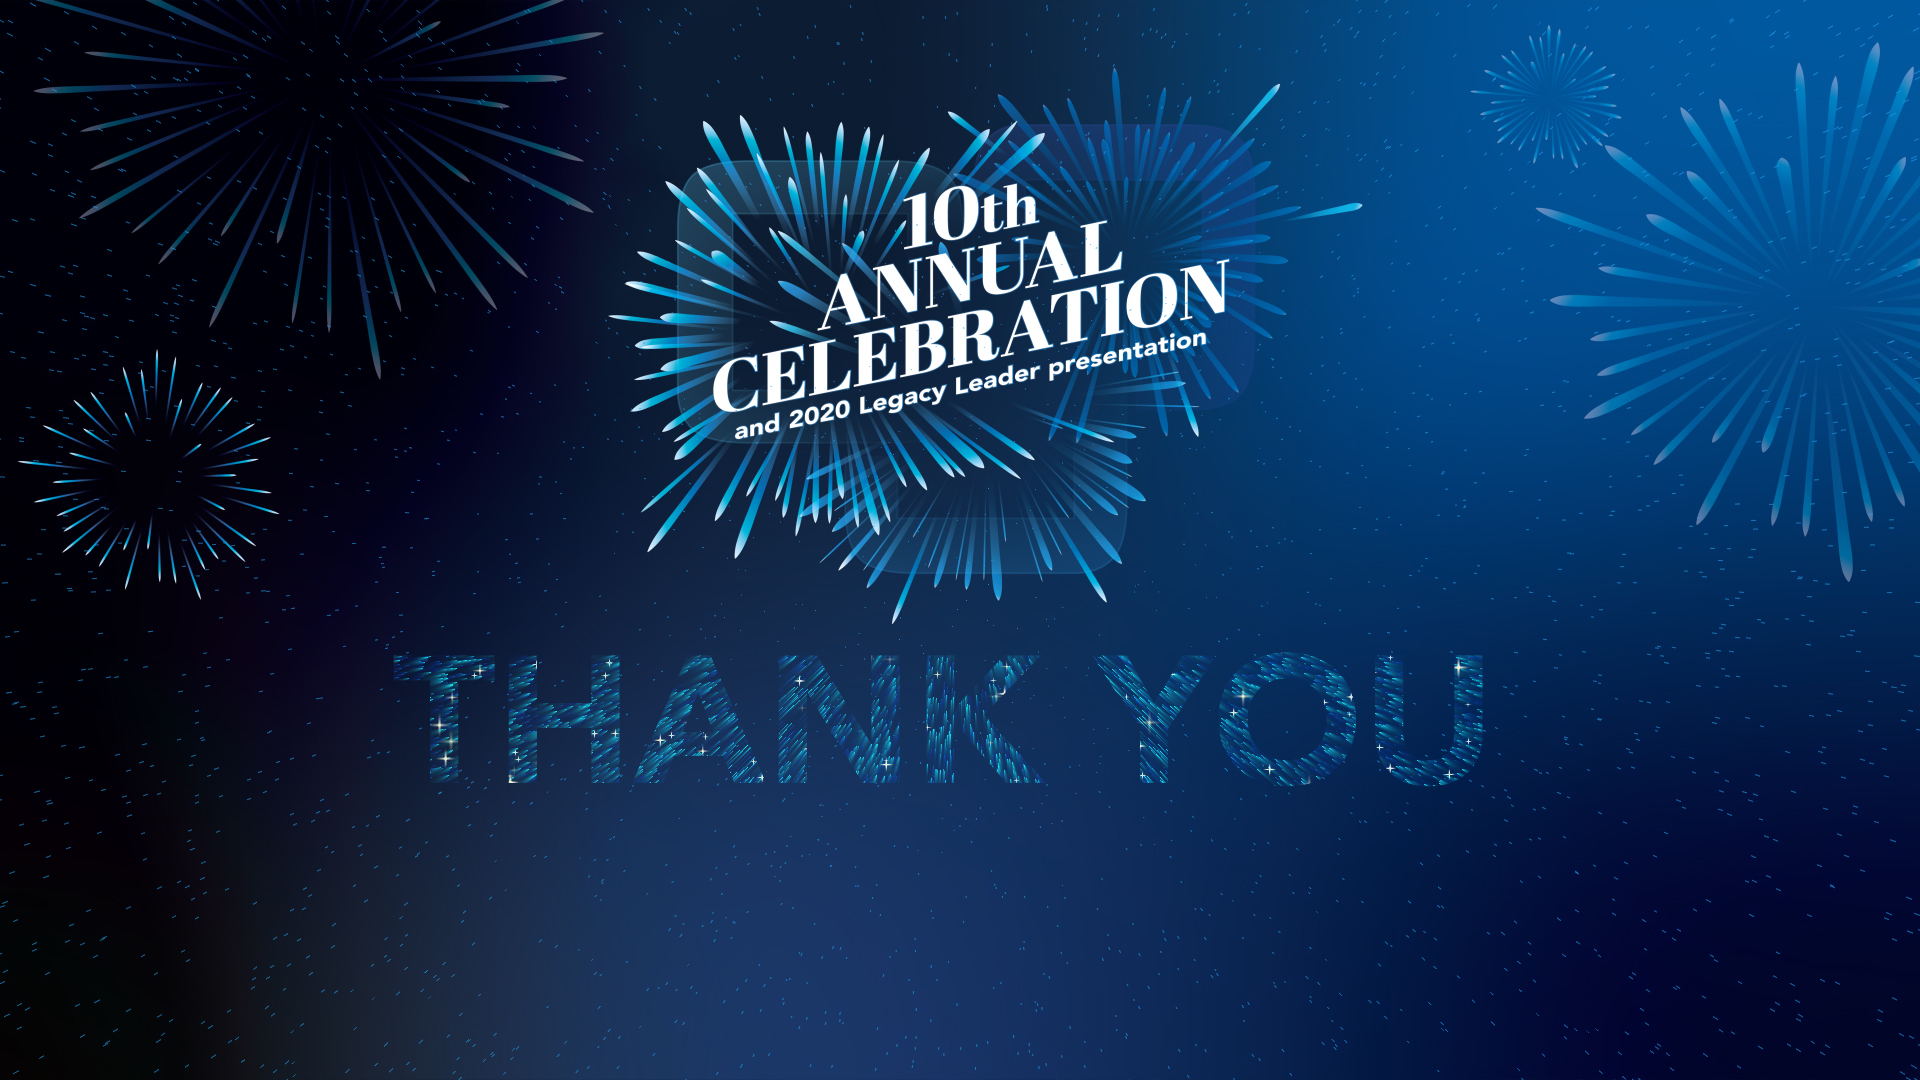 Highlights from our 10th Annual Celebration